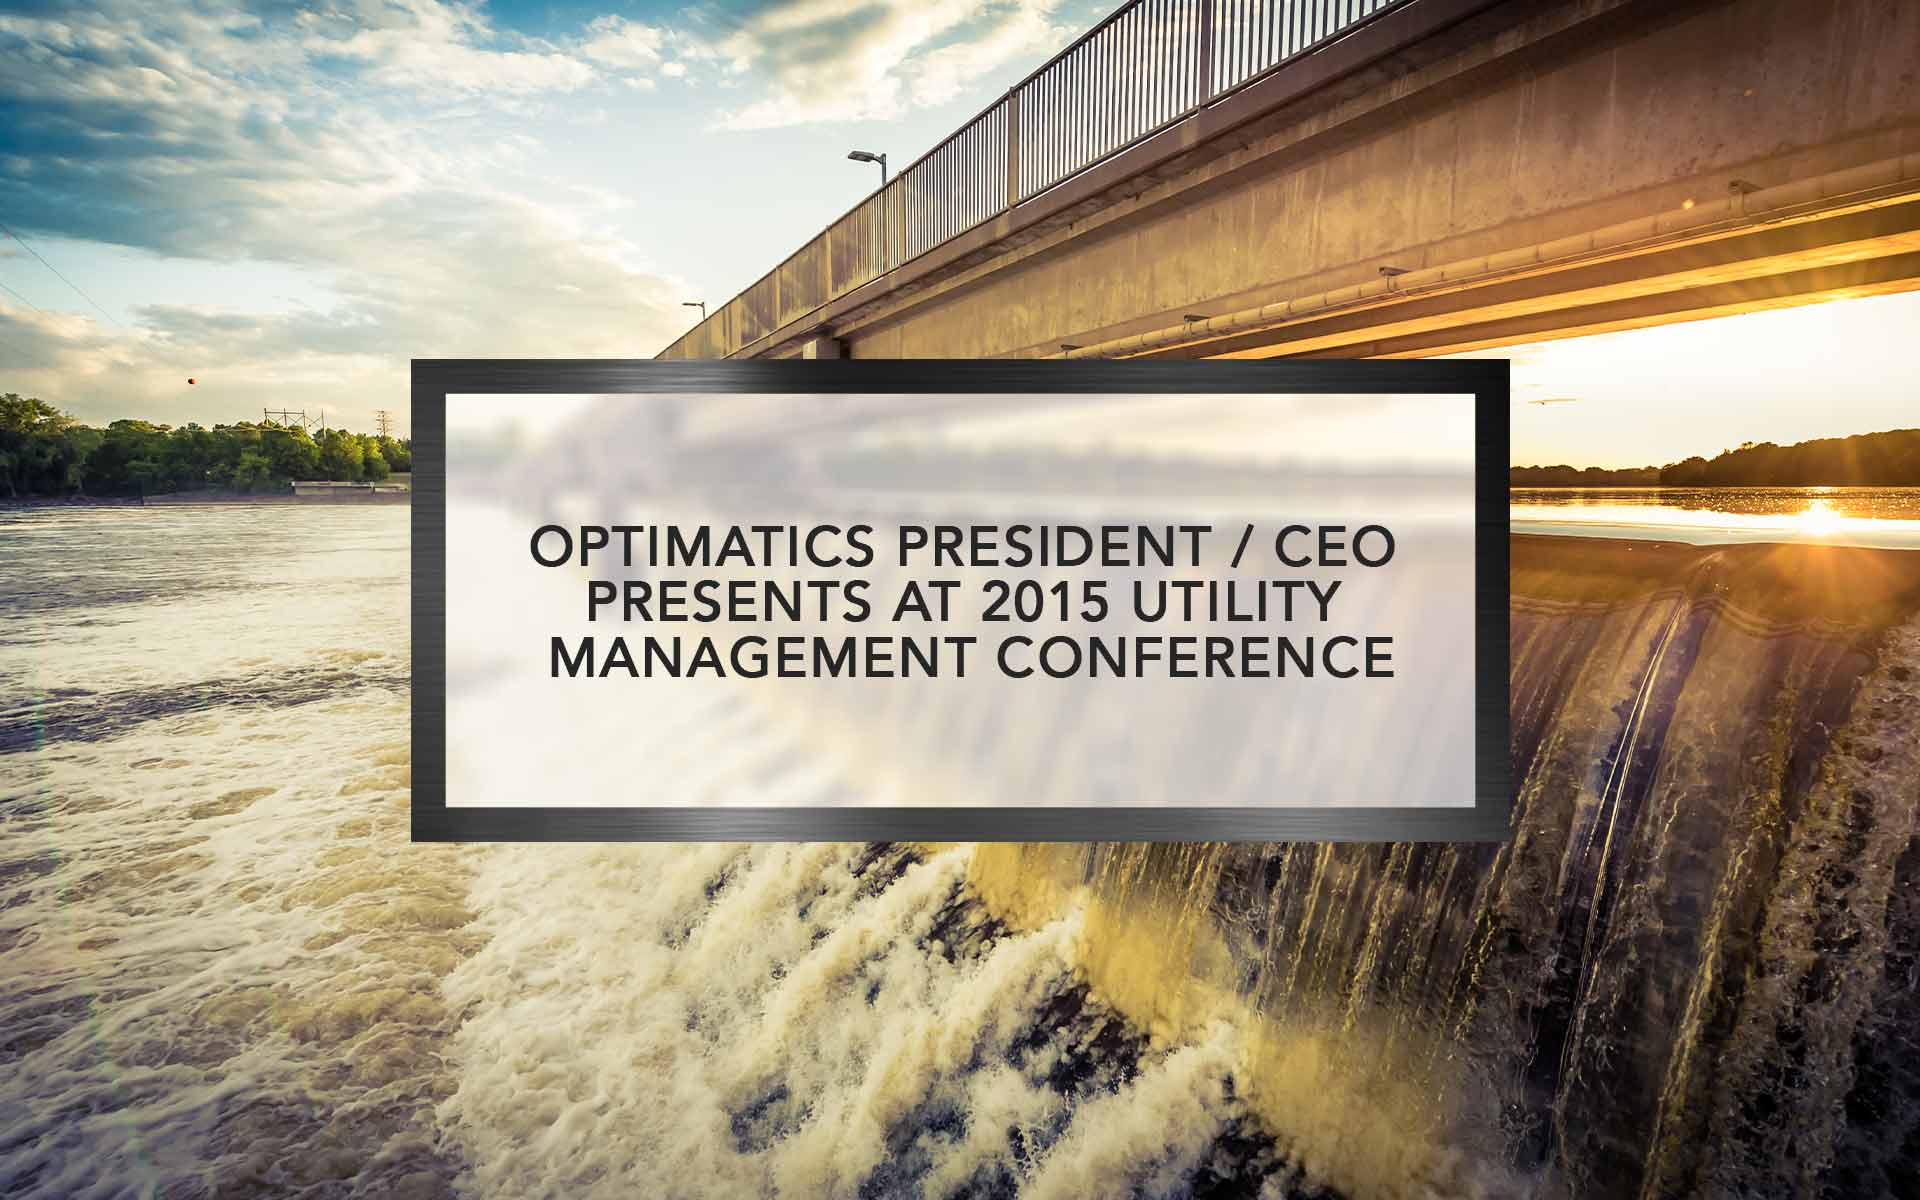 Optimatics President / CEO presents at 2015 Utility Management conference